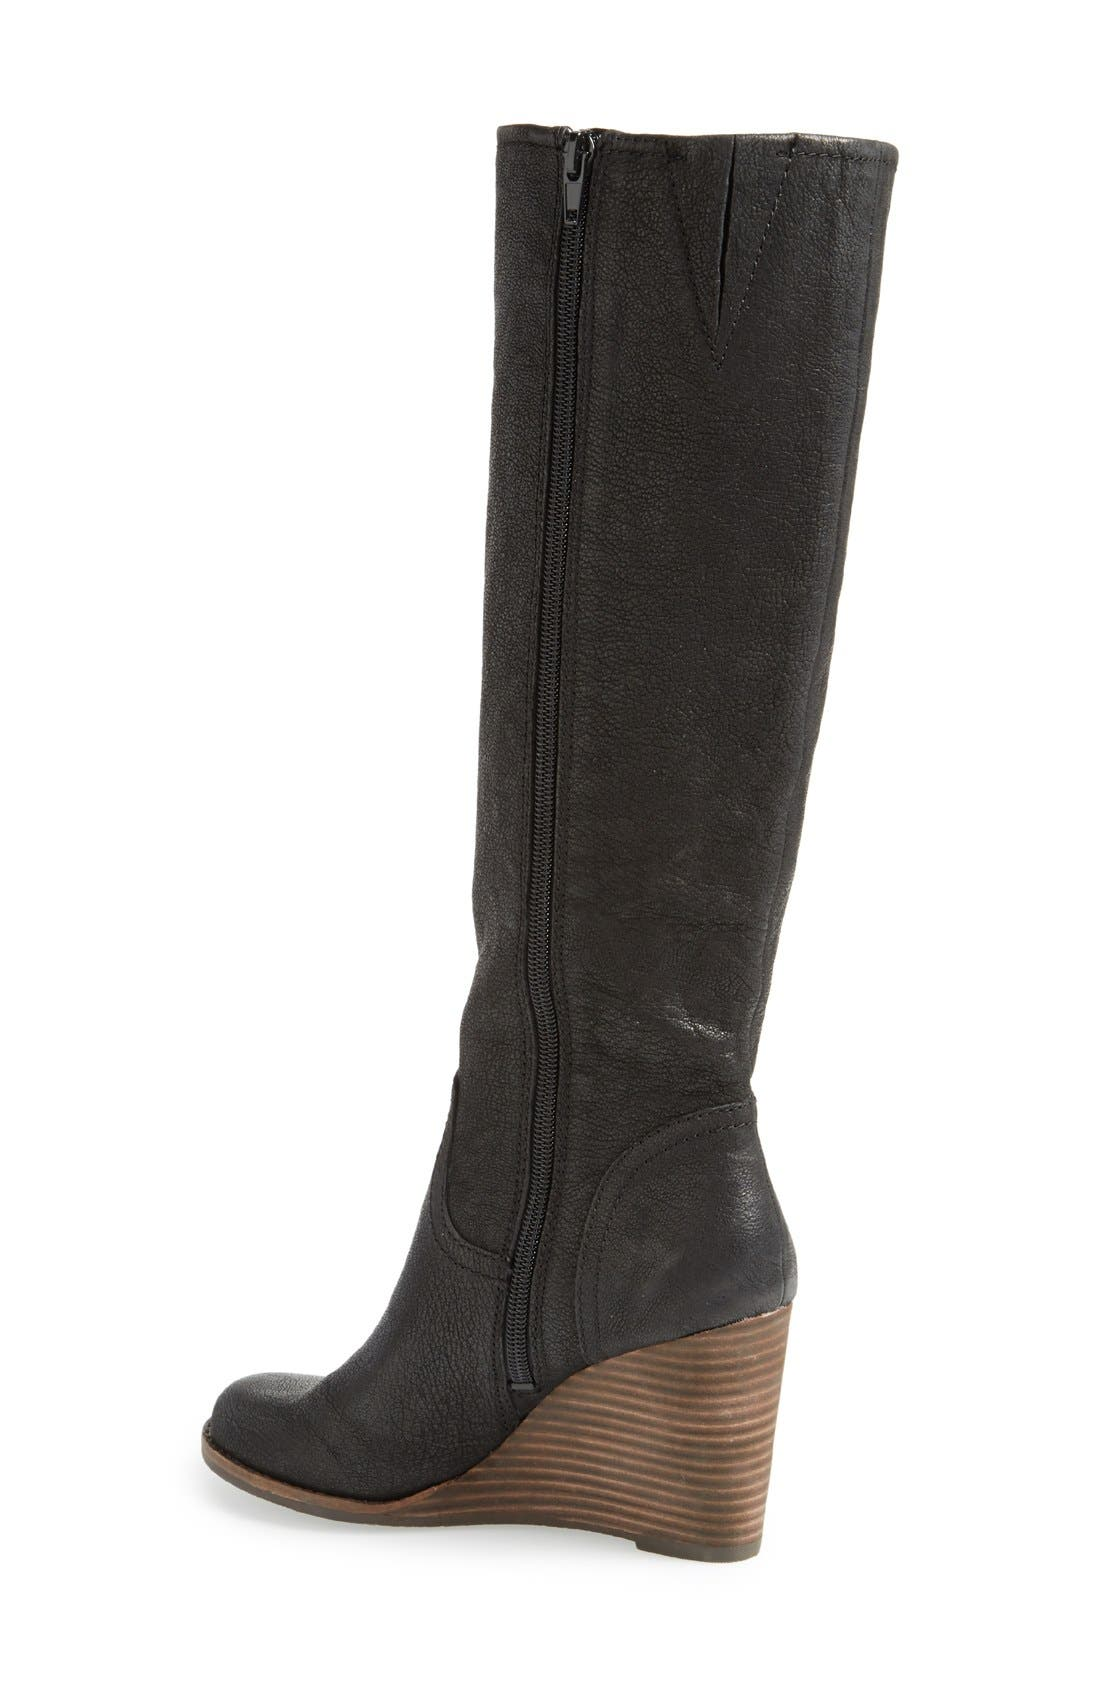 'Yacie' Leather Wedge Boot,                             Alternate thumbnail 4, color,                             002